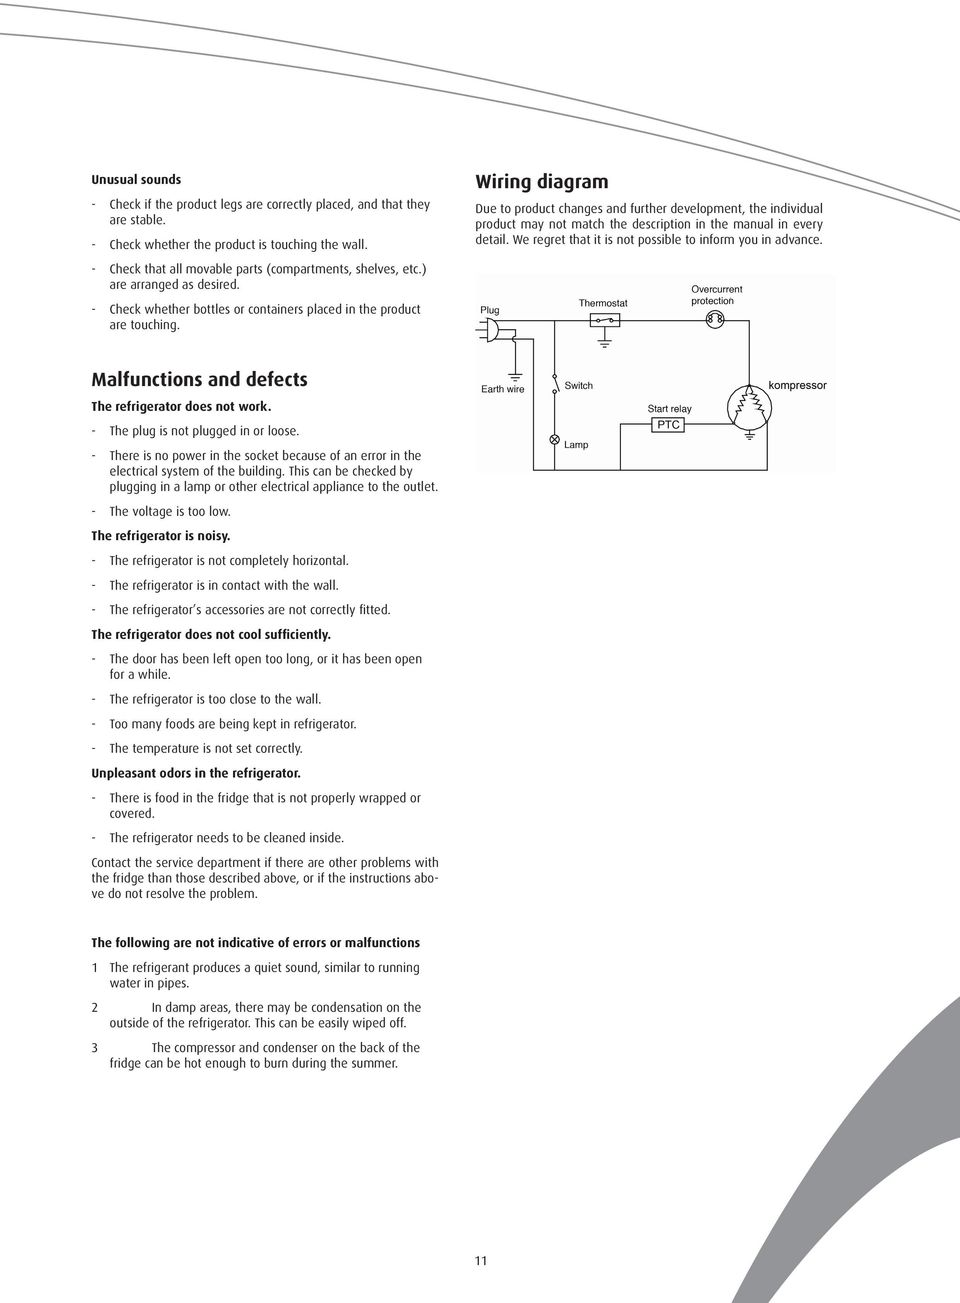 Wiring diagram Due to product changes and further development, the individual product may not match the description in the manual in every detail.